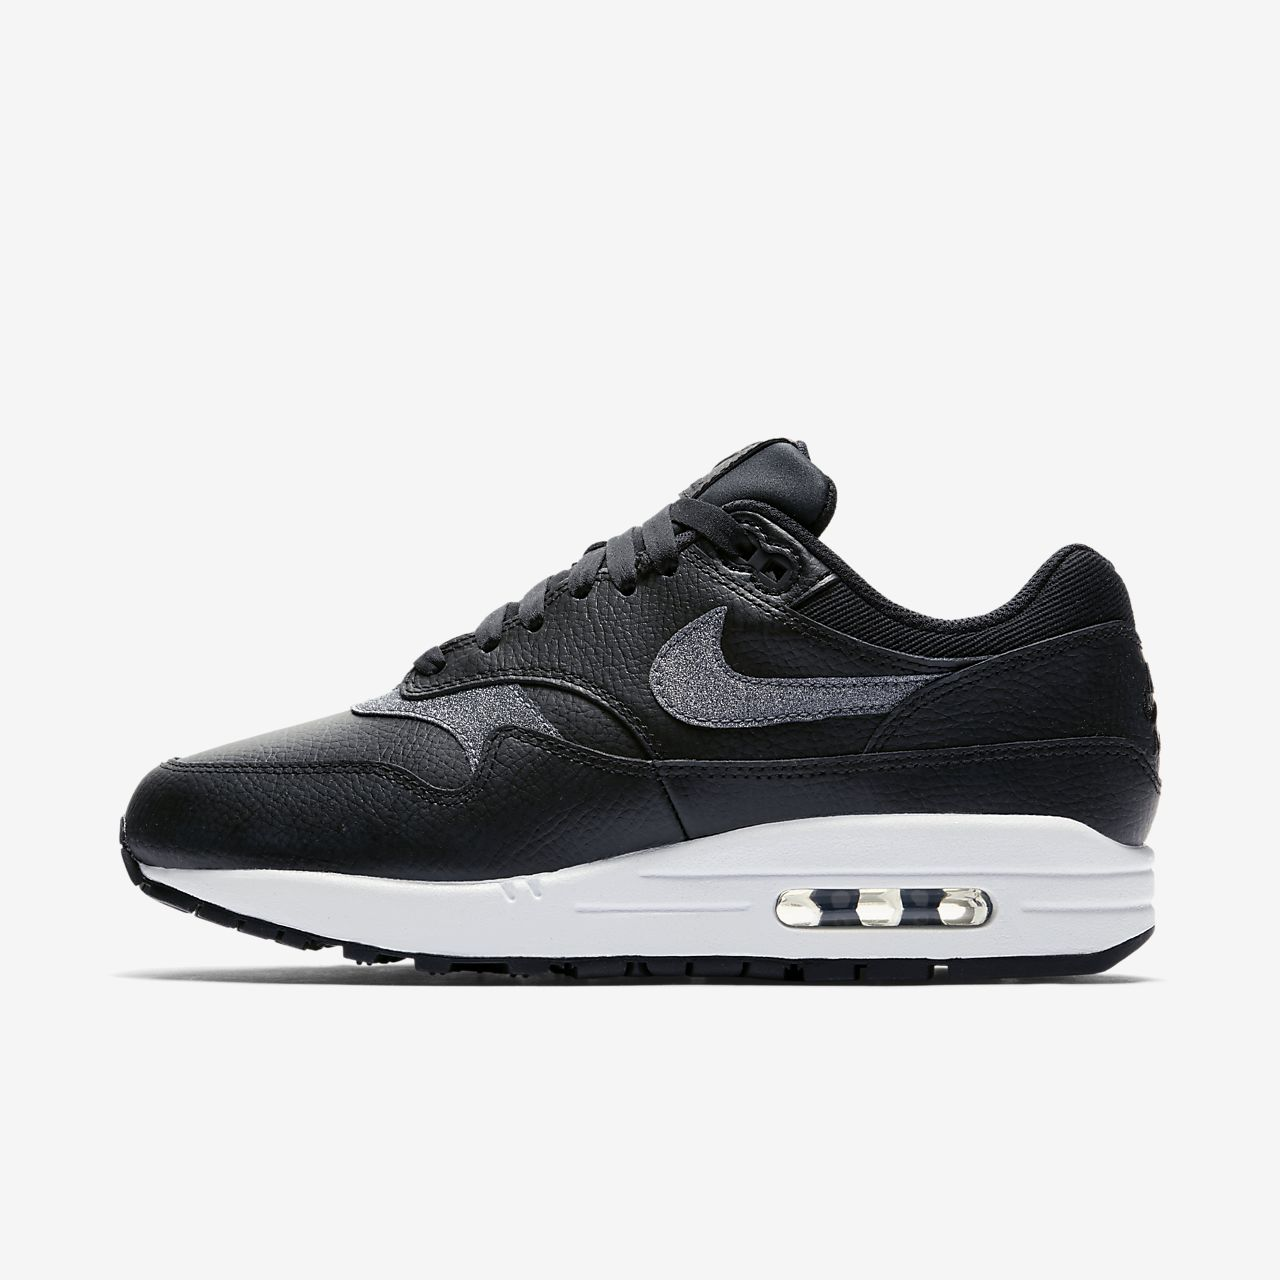 wholesale dealer a6819 8a3f2 Nike Air Max 1 SE Glitter Women's Shoe. Nike.com GB